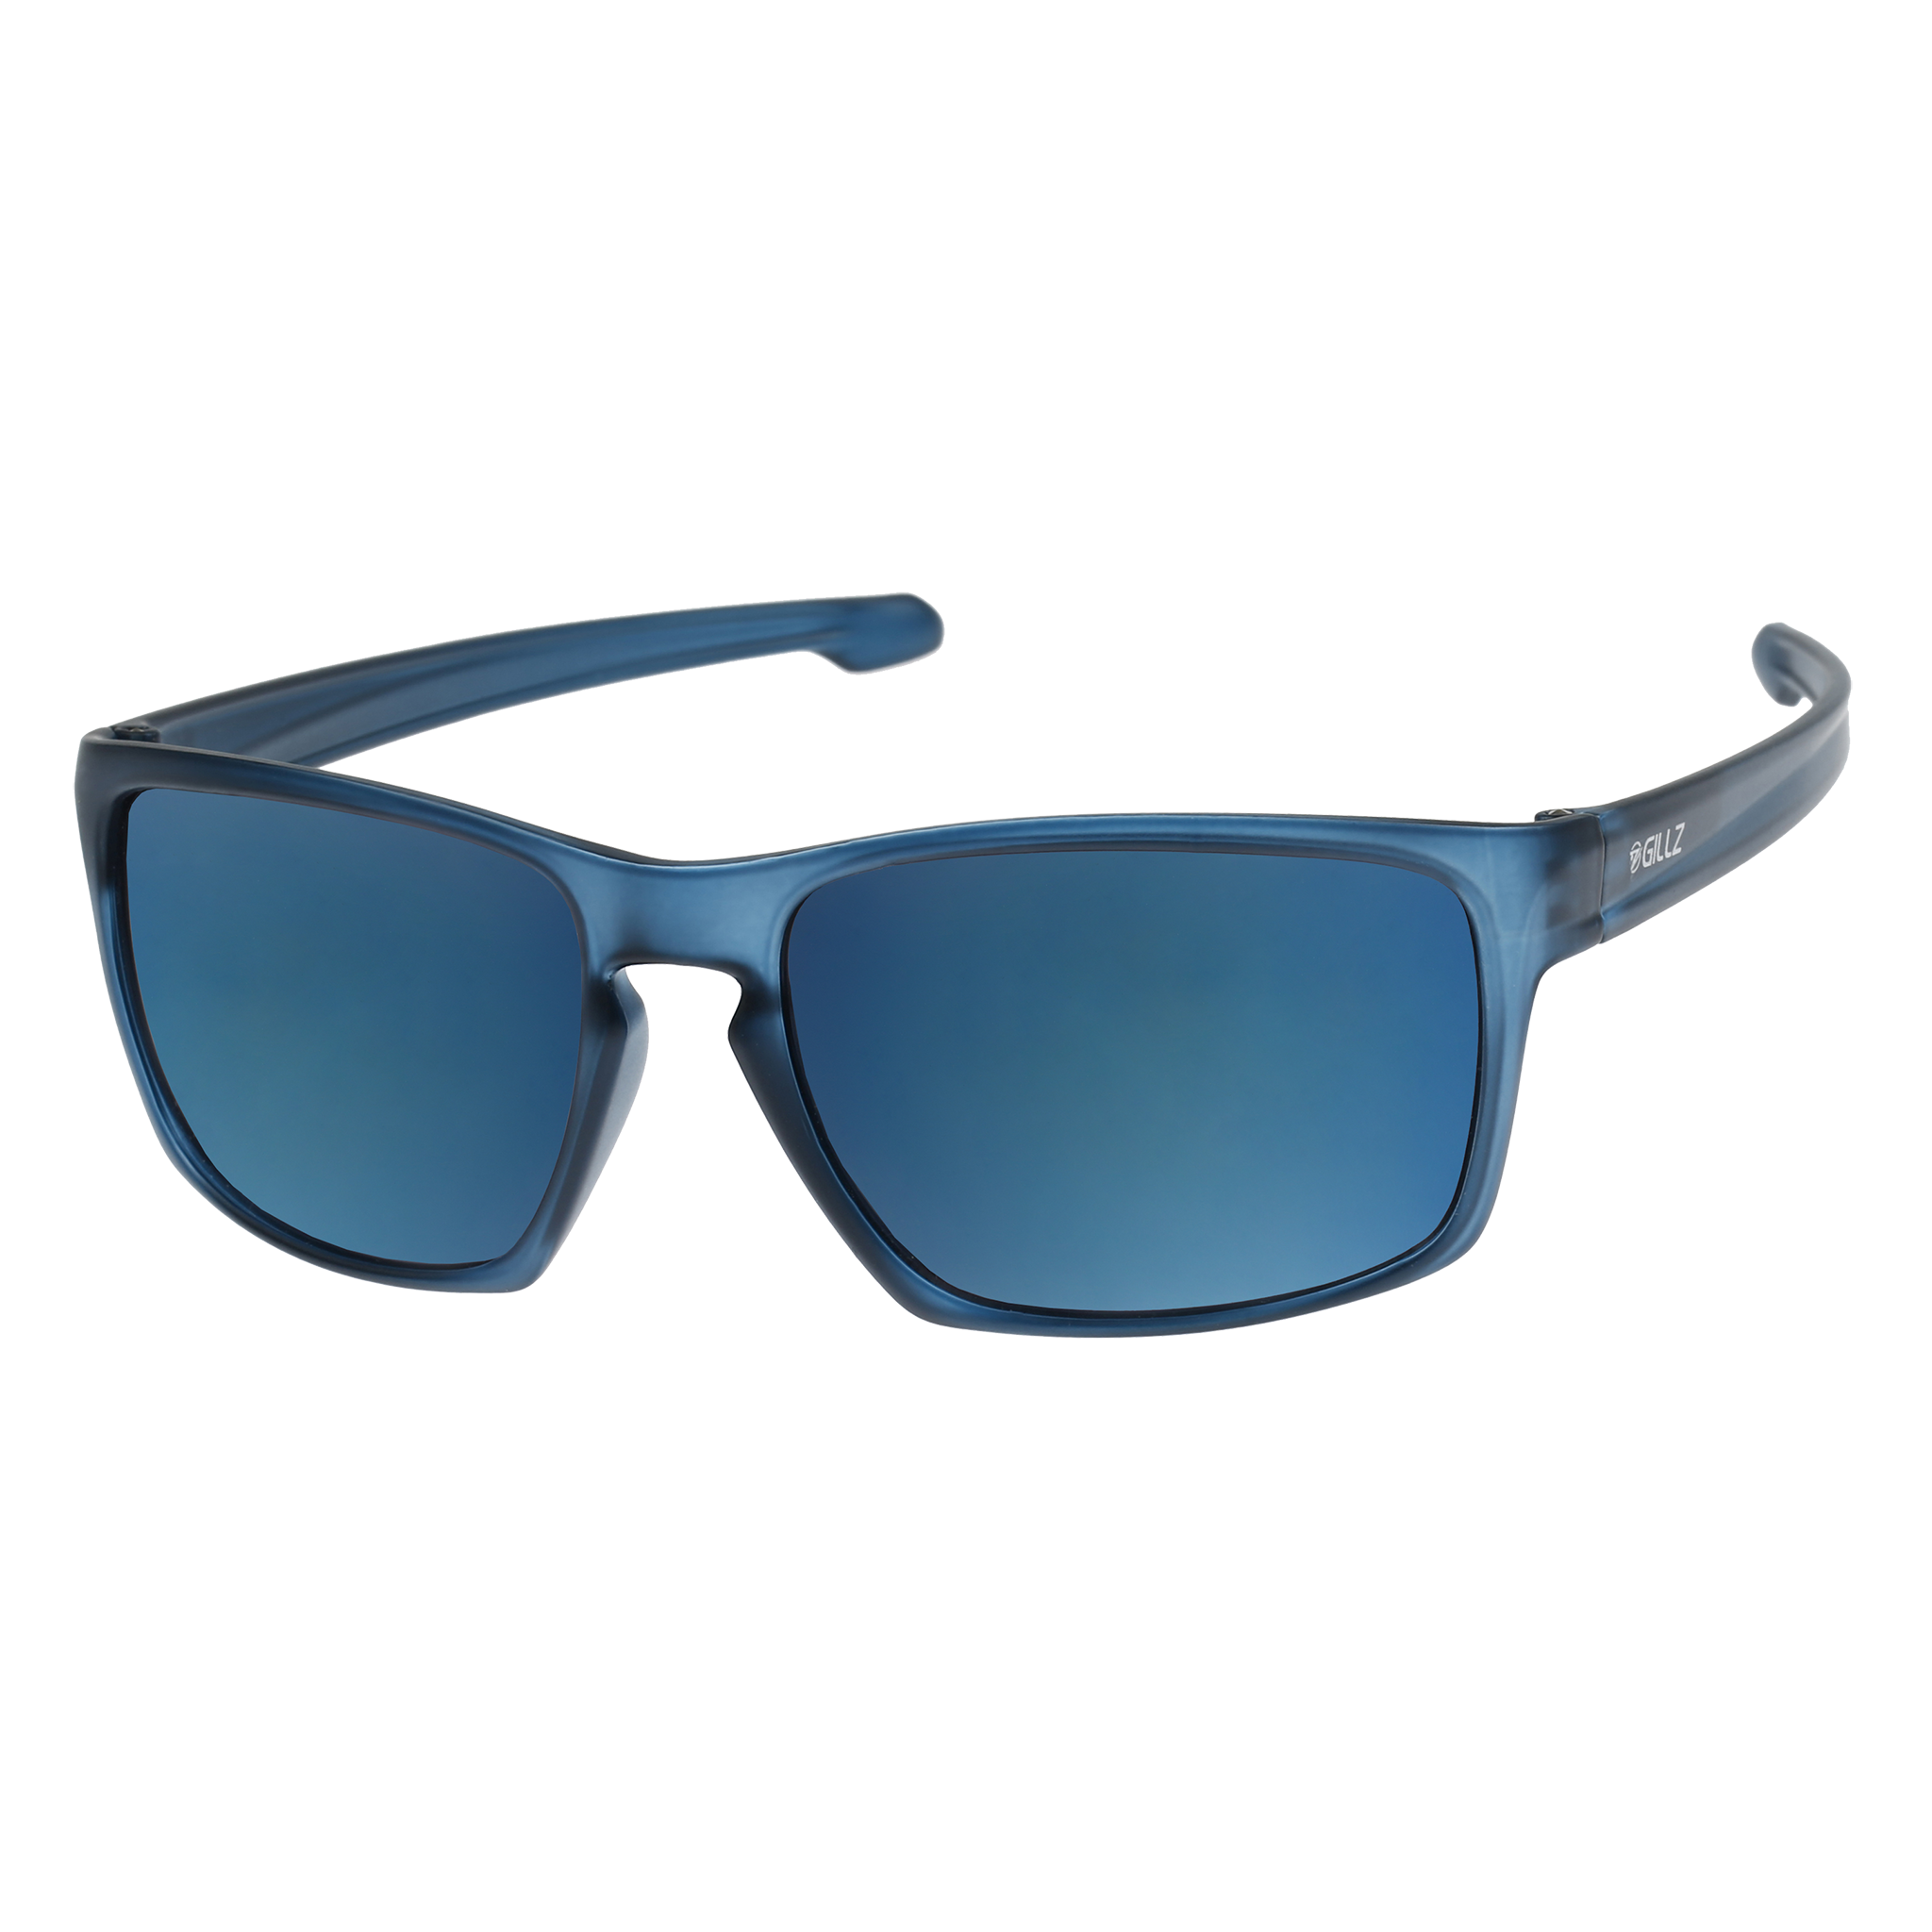 Goggles transparent water. Gillzlenz seafarer fishing sunglasses